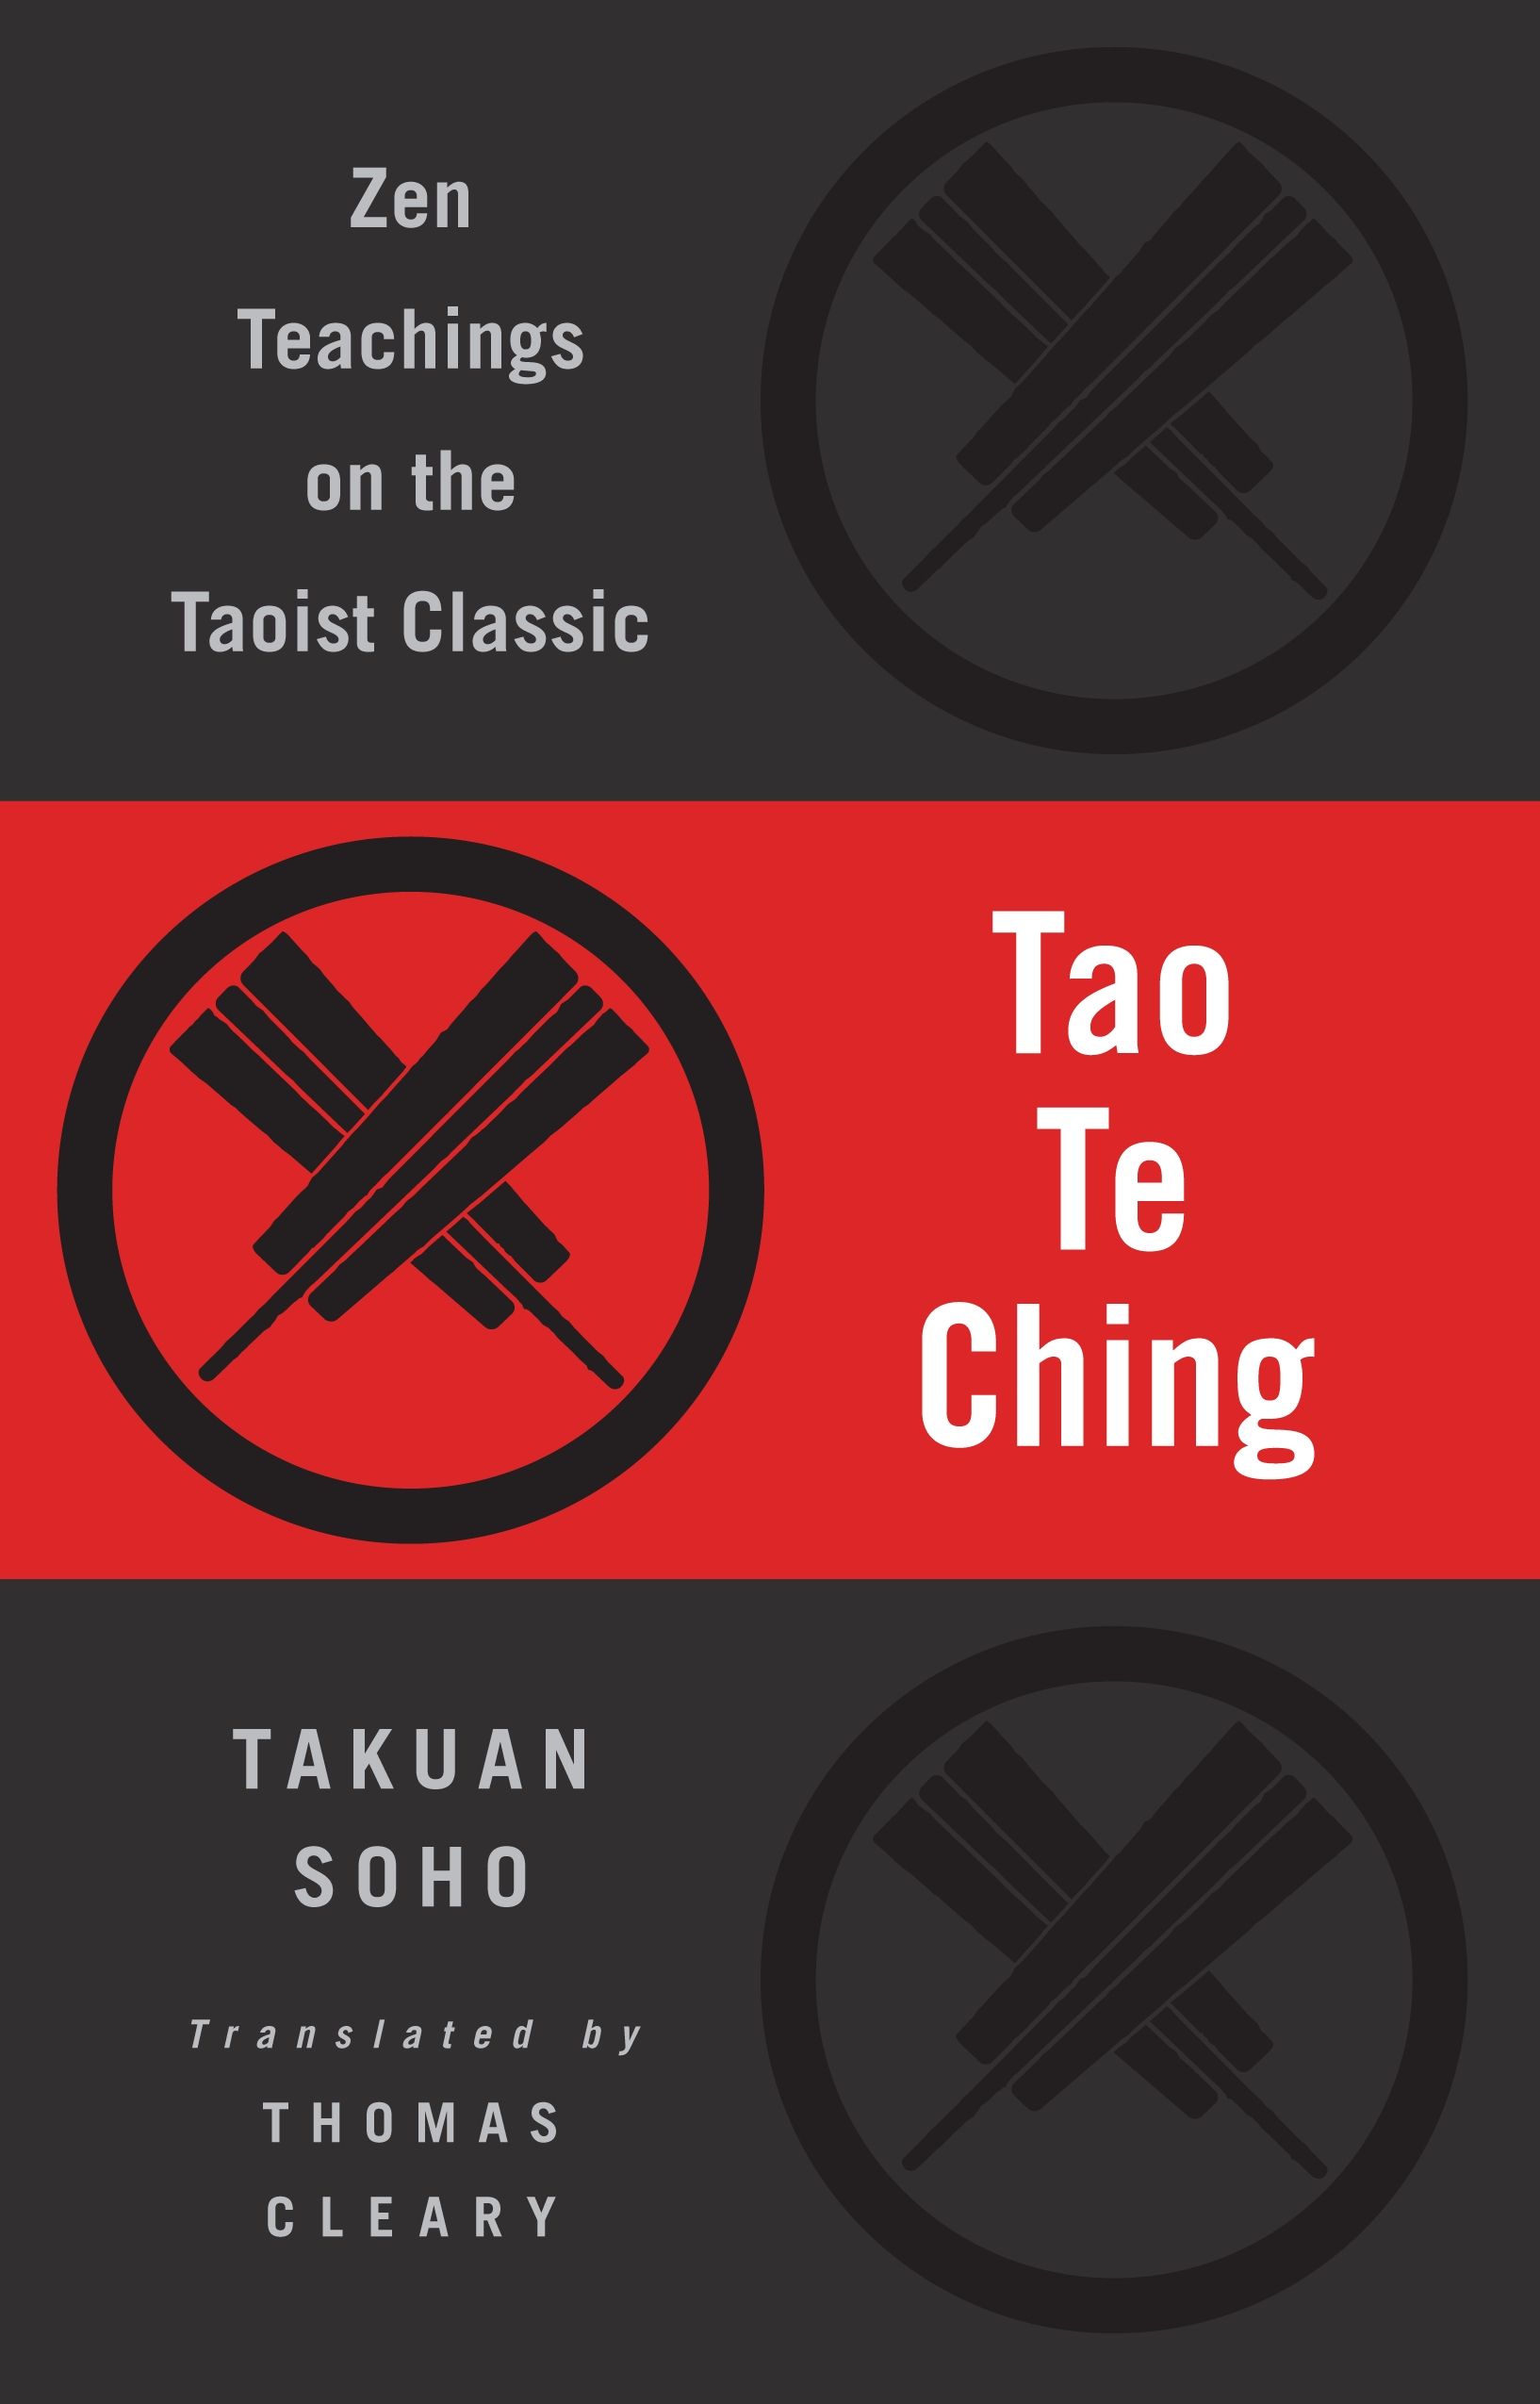 Tao Te Ching: Zen Teachings on the Taoist Classic